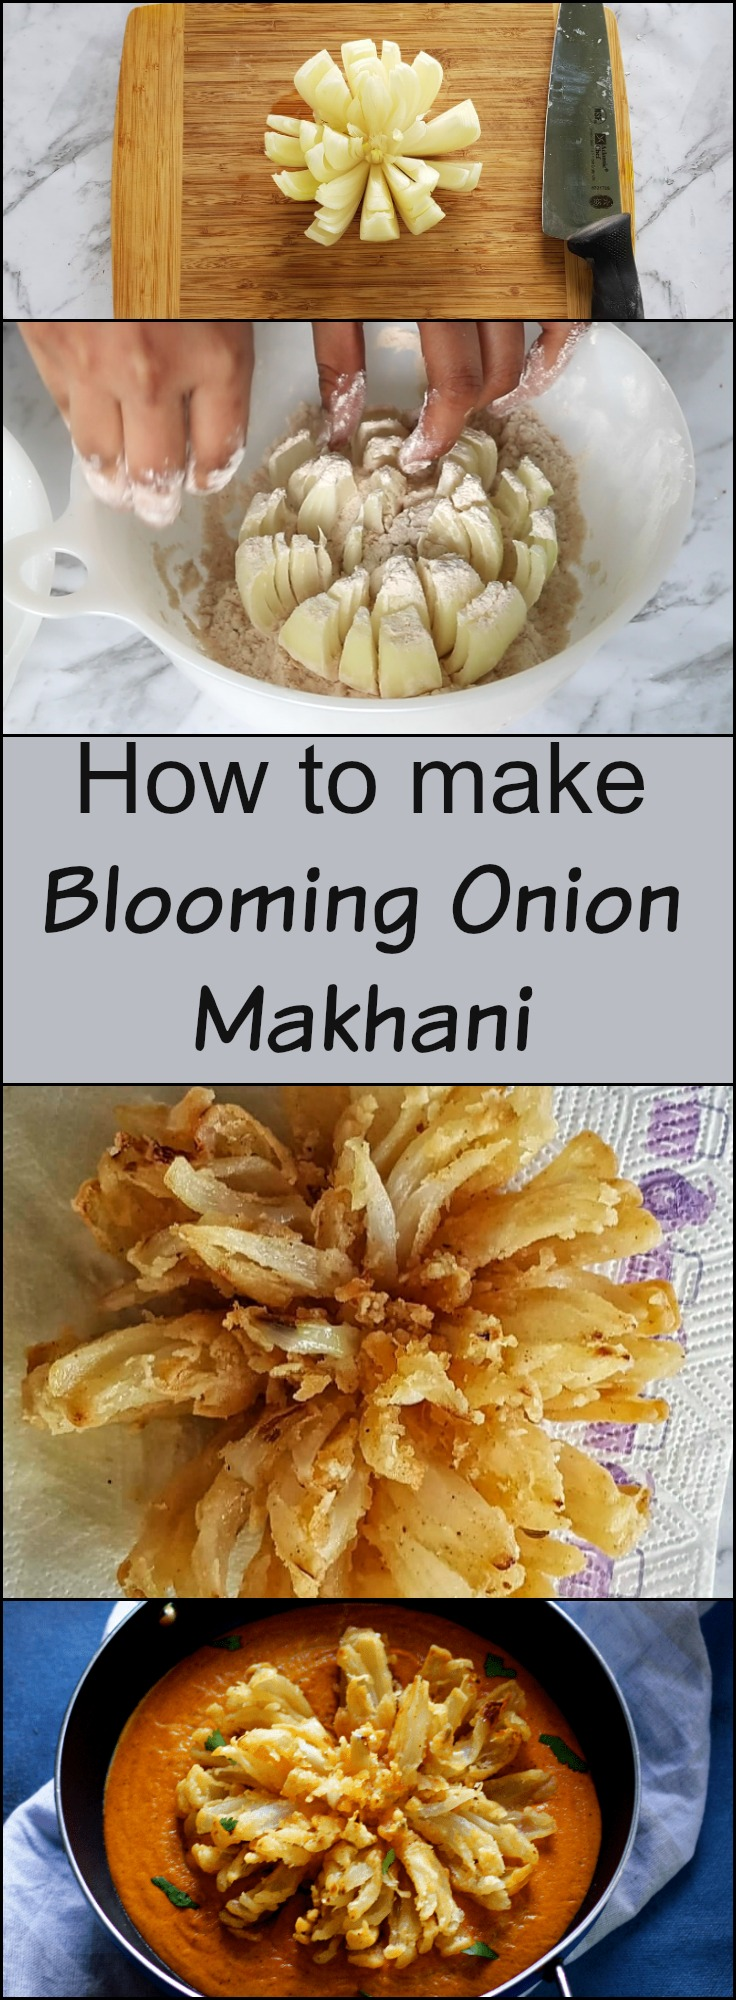 Blooming Onion Makhani